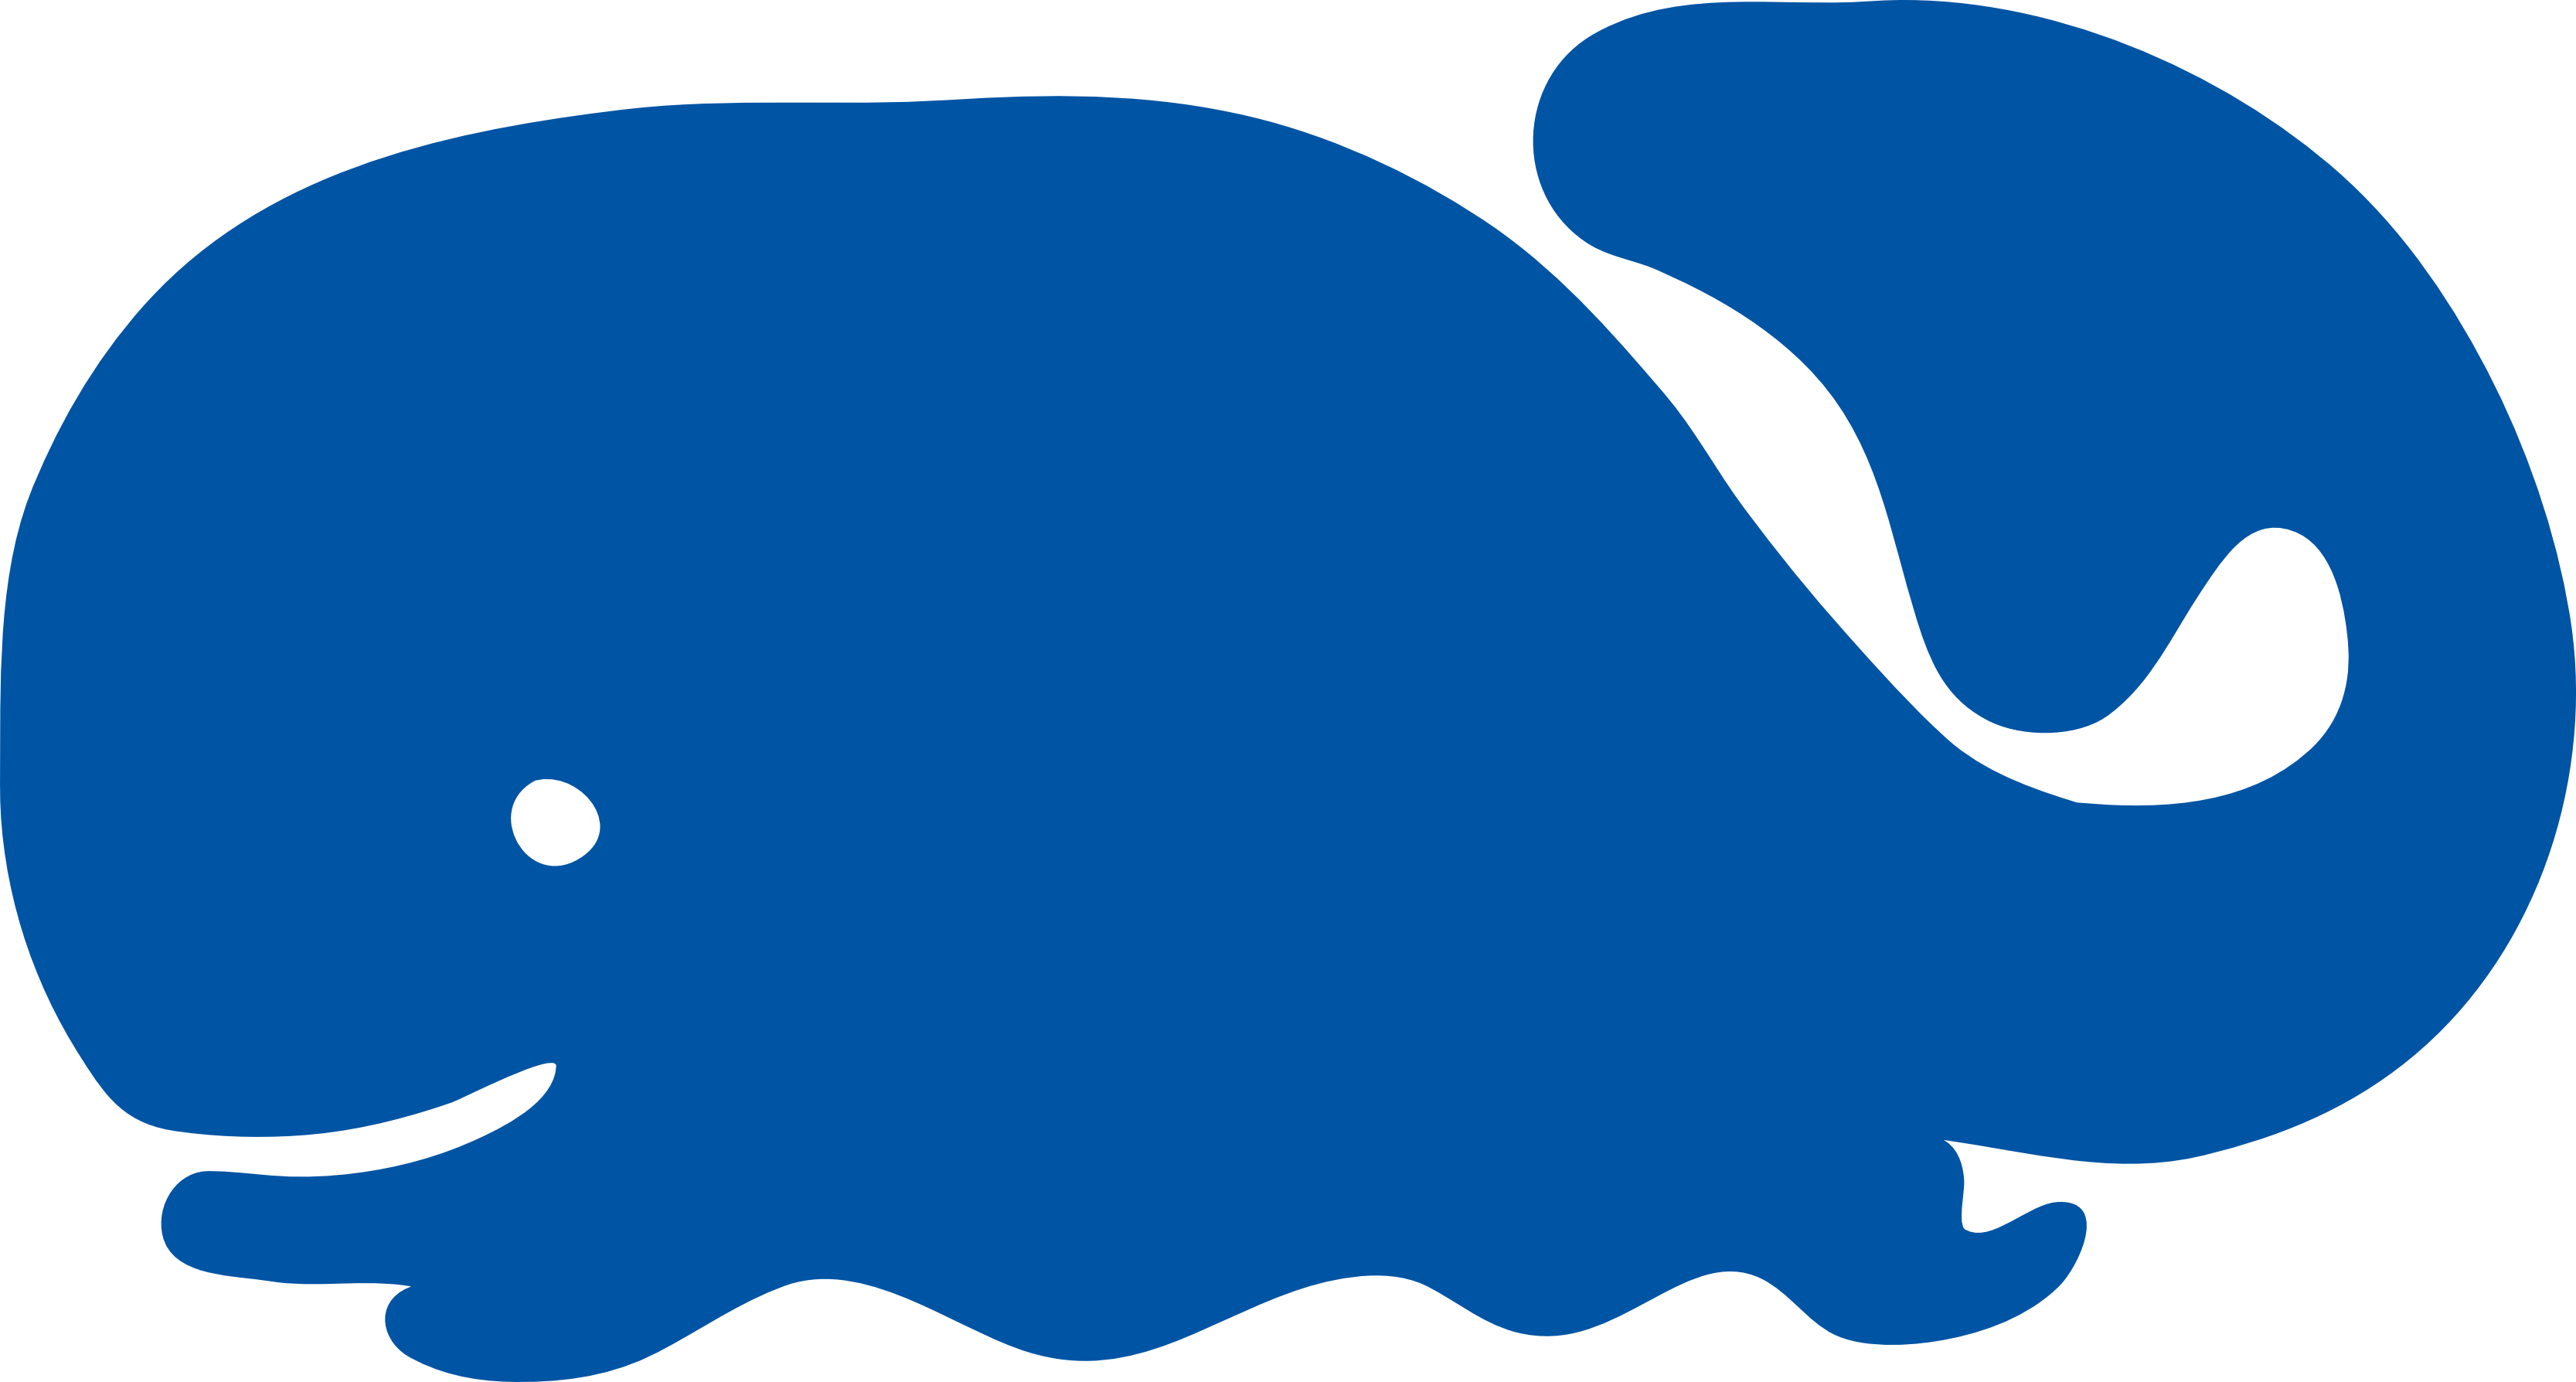 Clipart whale stencil. Humpback panda free images